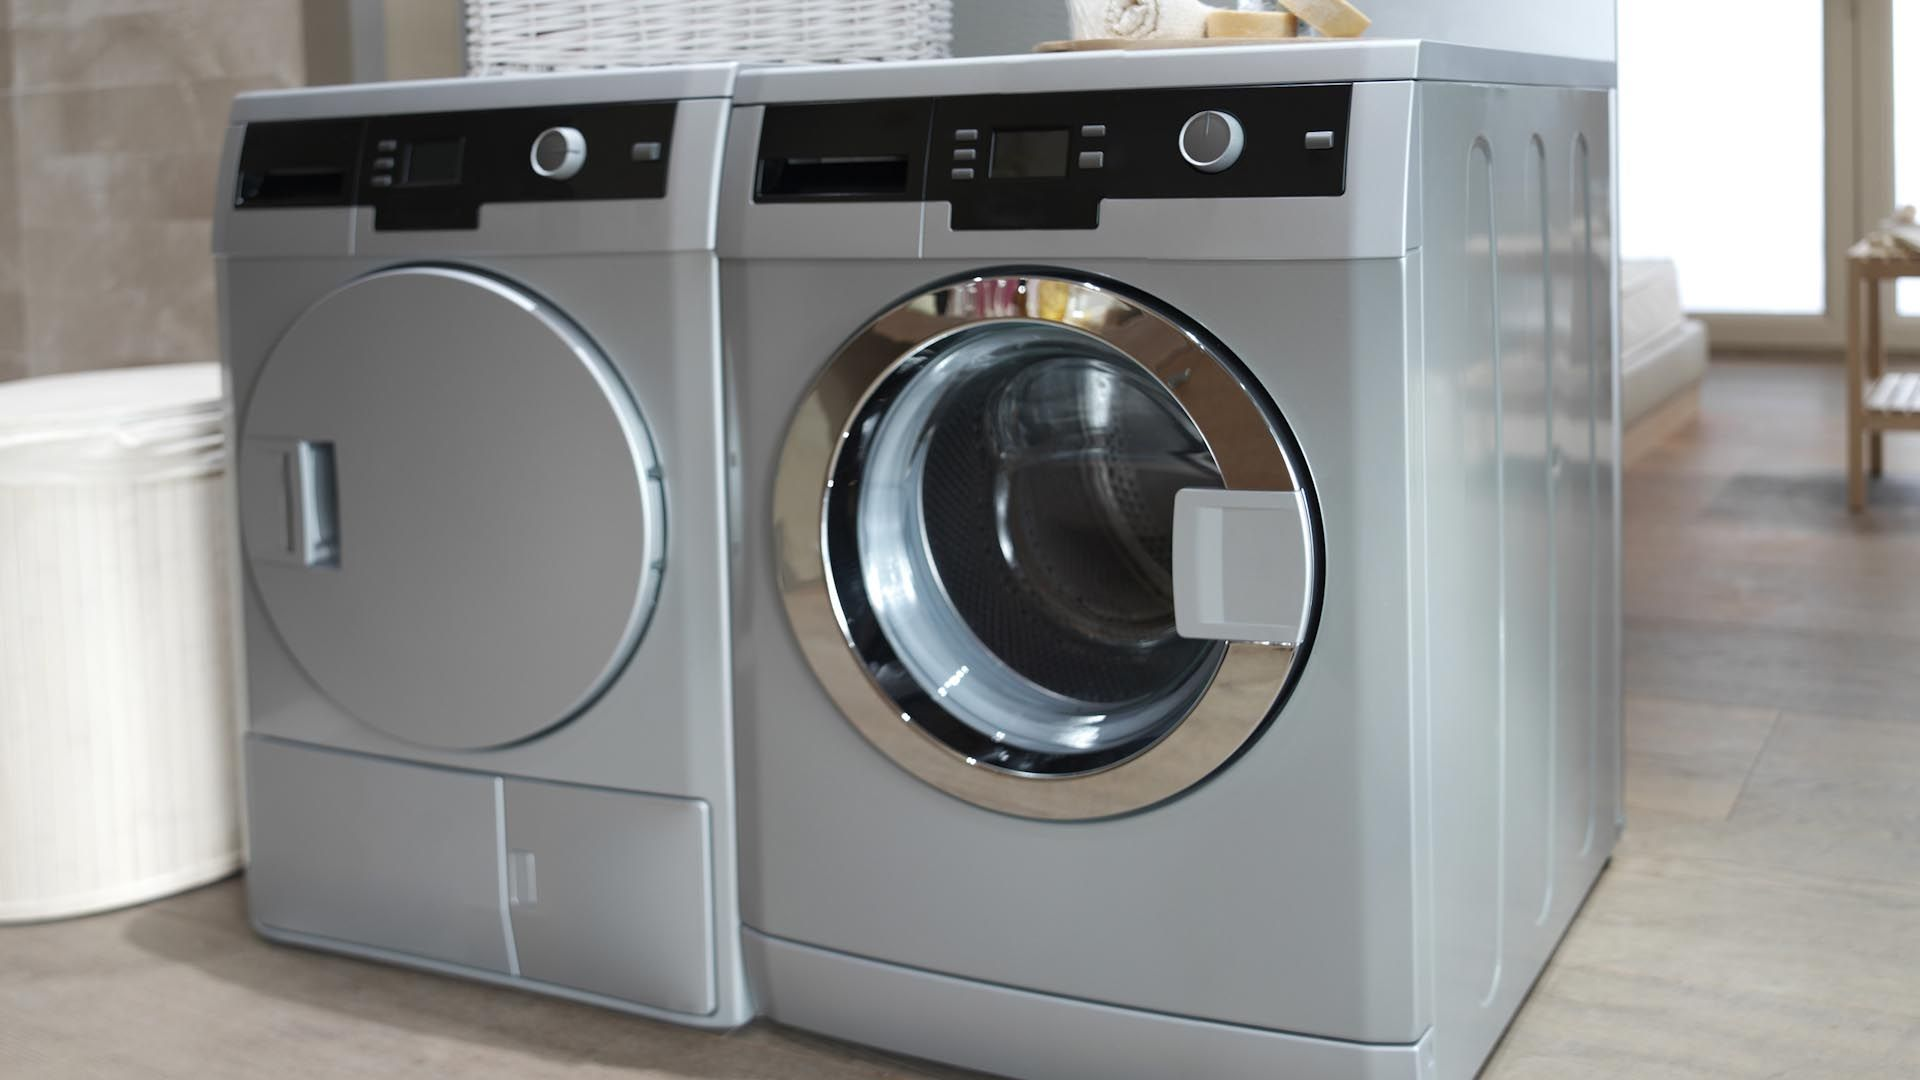 Best Washers for 800 or Less Washing machine, Washing